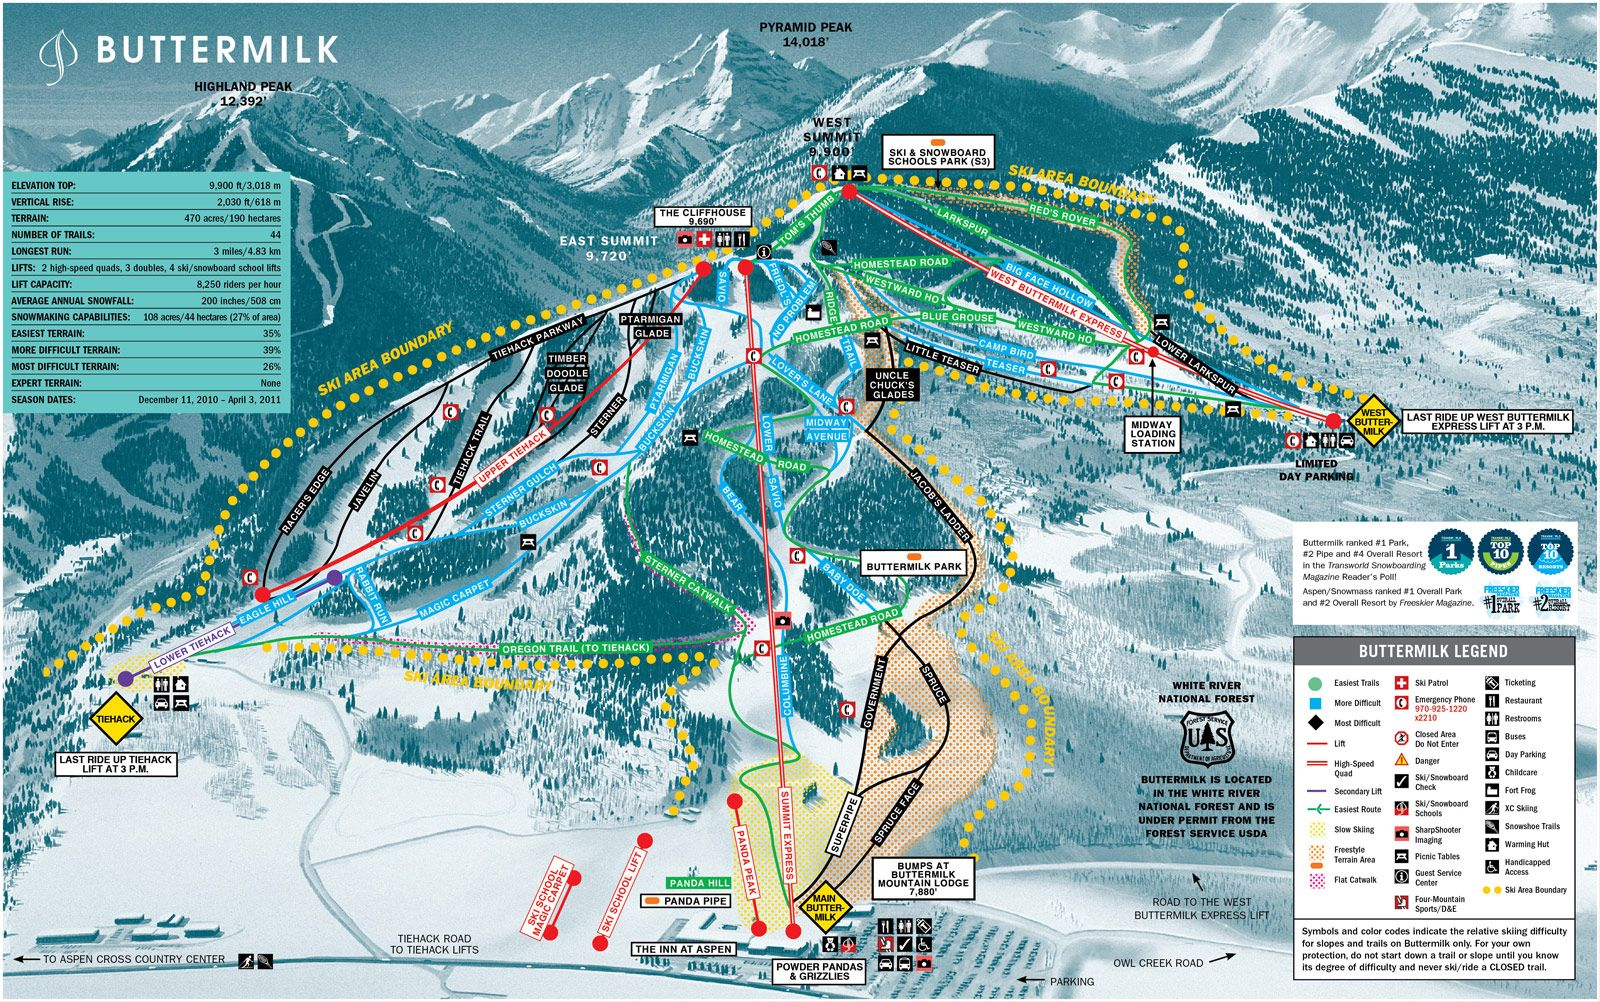 Apsen Colorado Buttermilk Trail Map Places Ive Snow Skied - Map of colorado ski resorts and cities